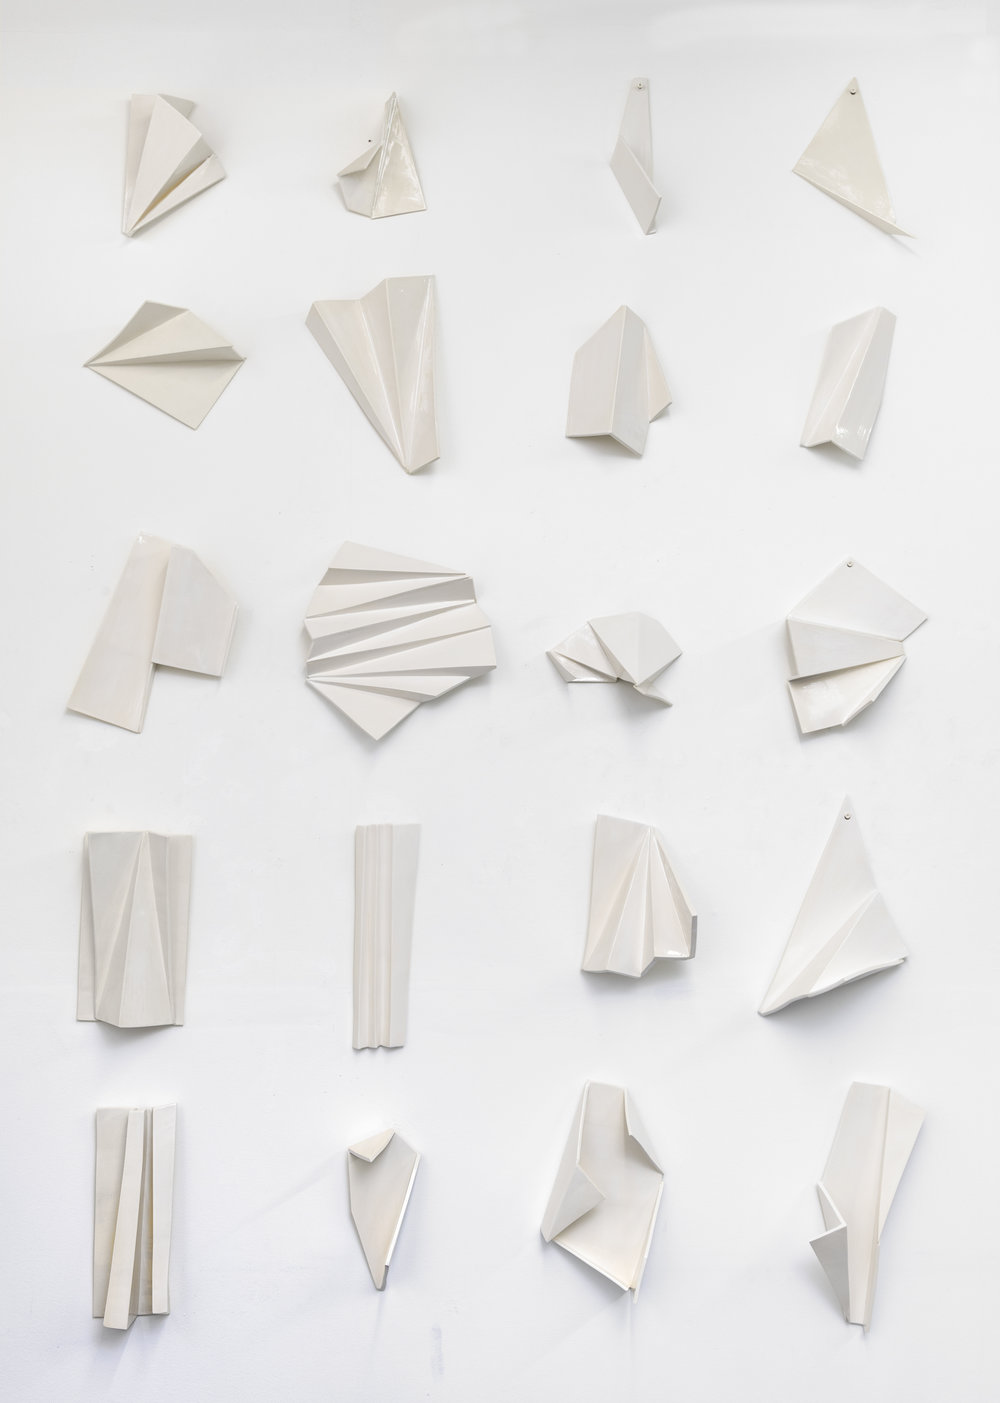 Alyson Shotz: Un/Folding    On view March 1 through May 27, 2019